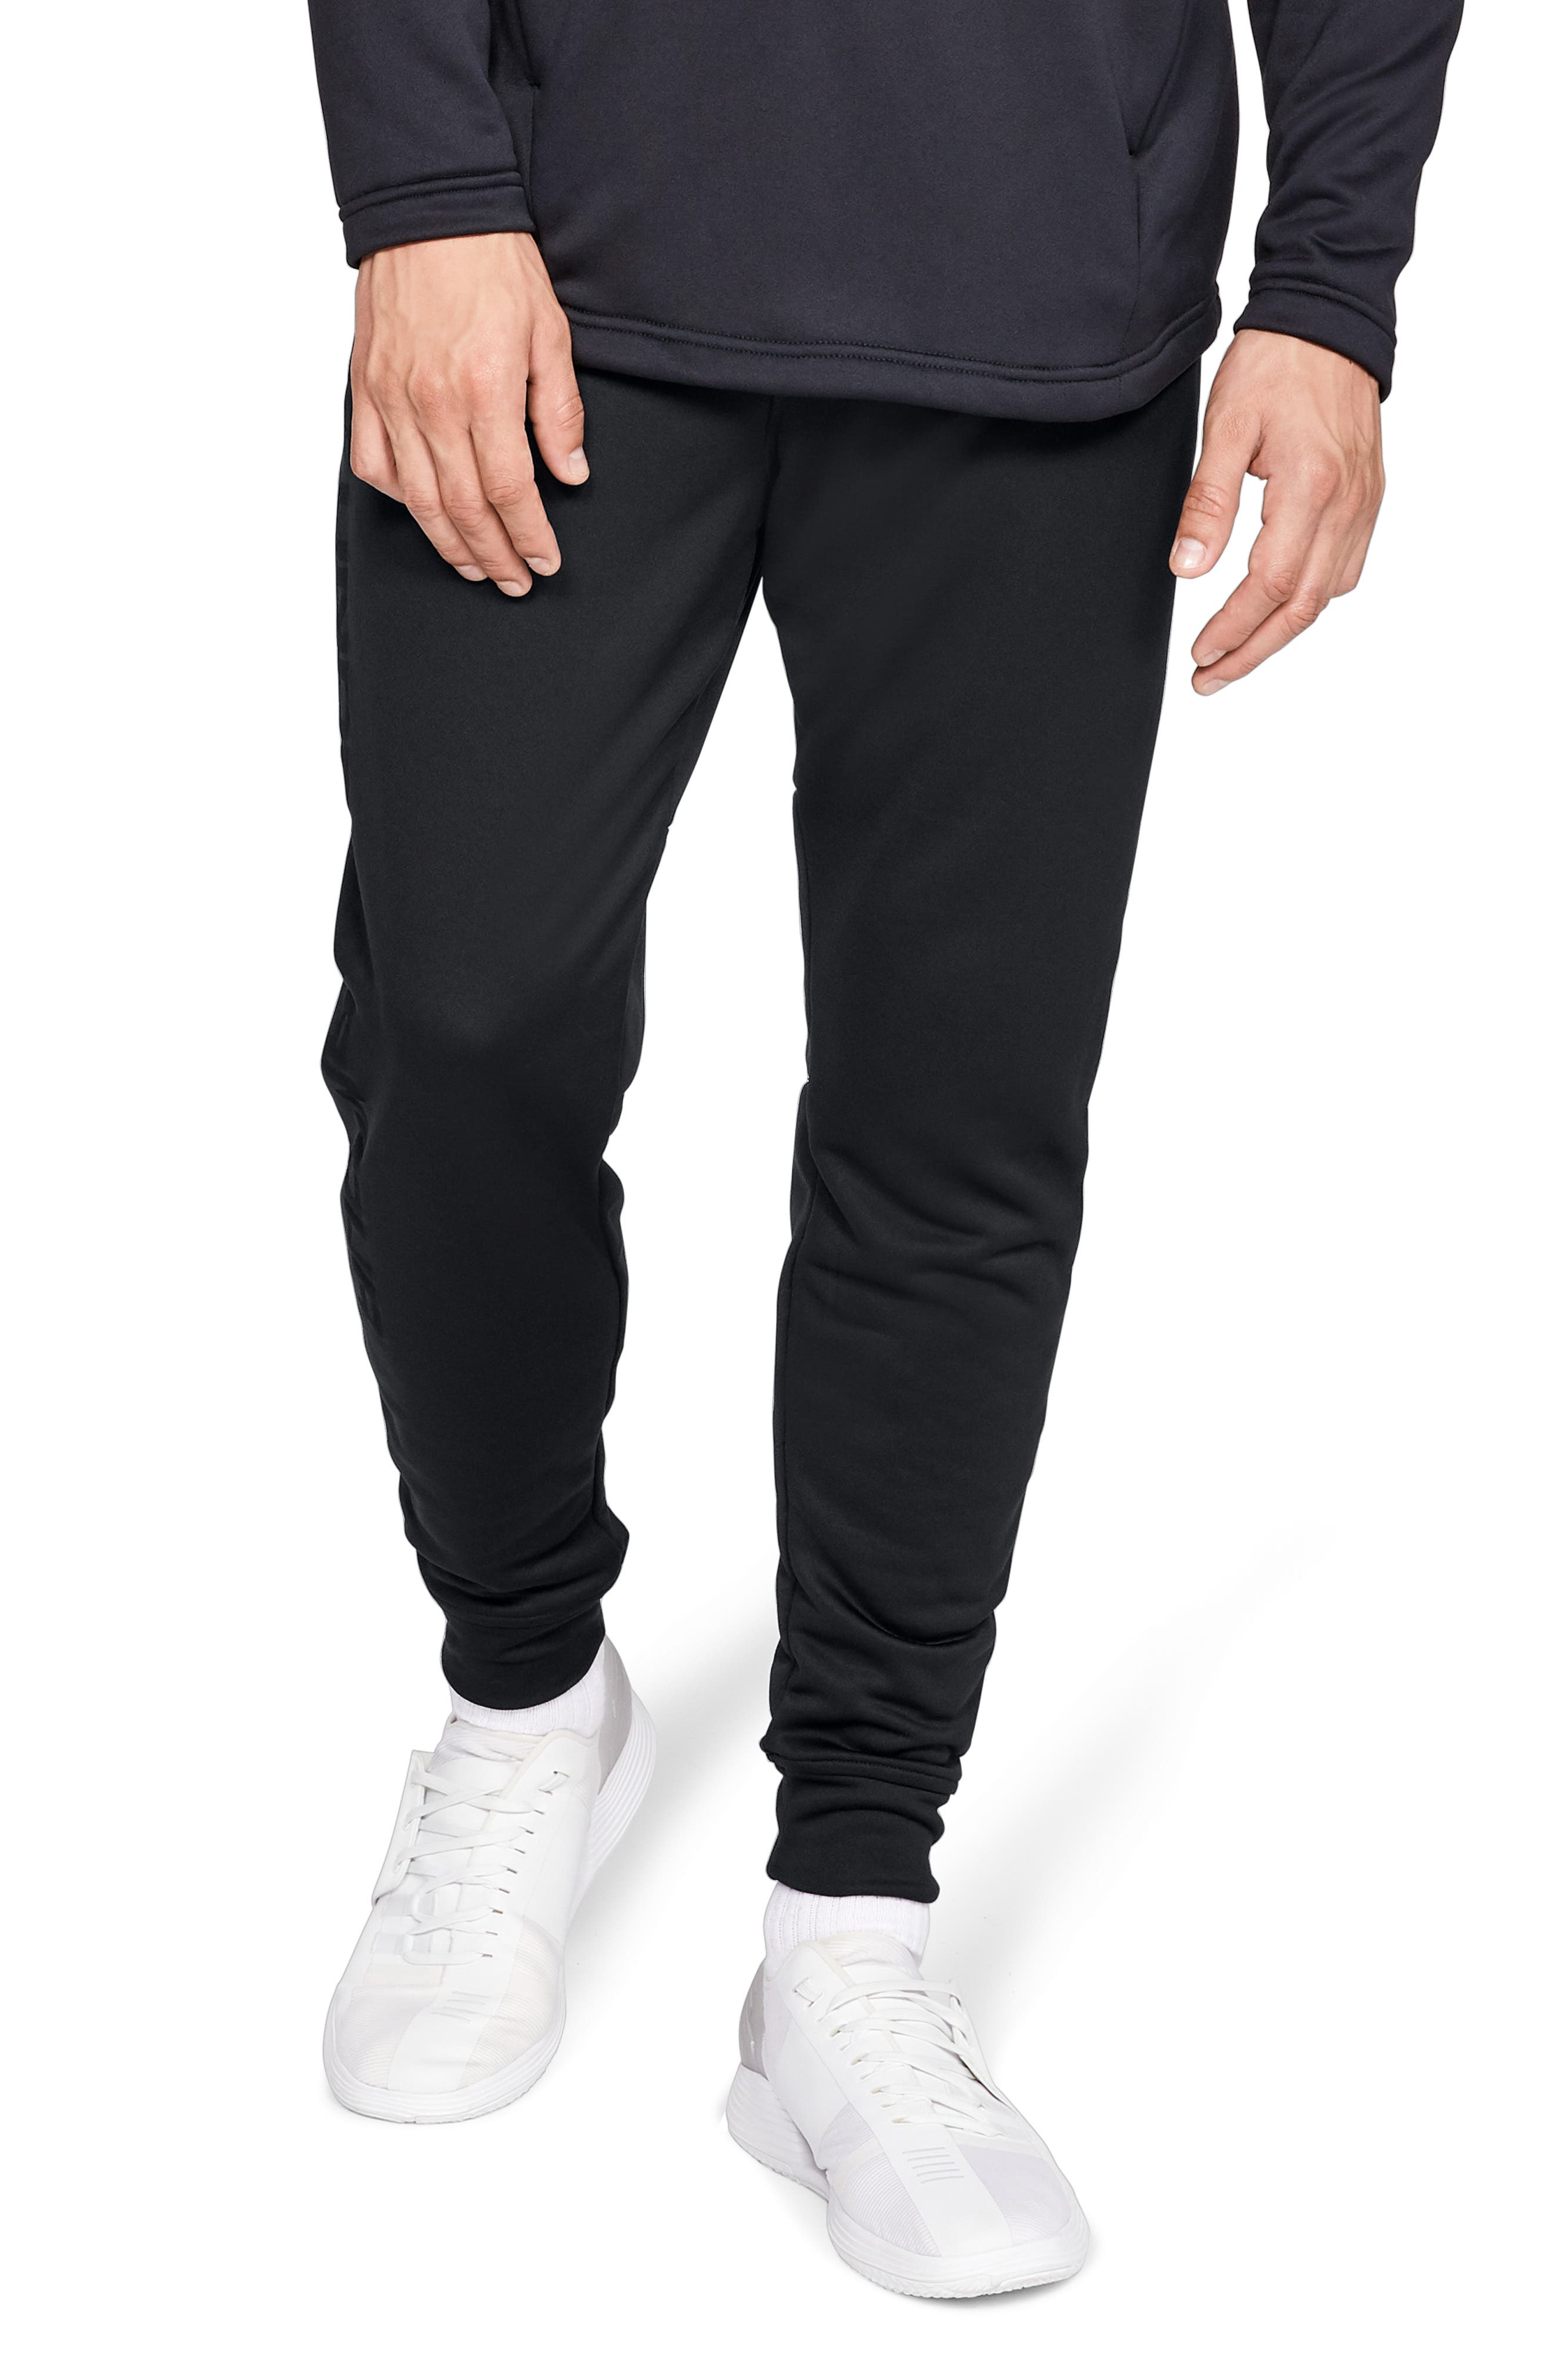 MK1 French Terry Joggers,                             Main thumbnail 1, color,                             BLACK/ BLACK